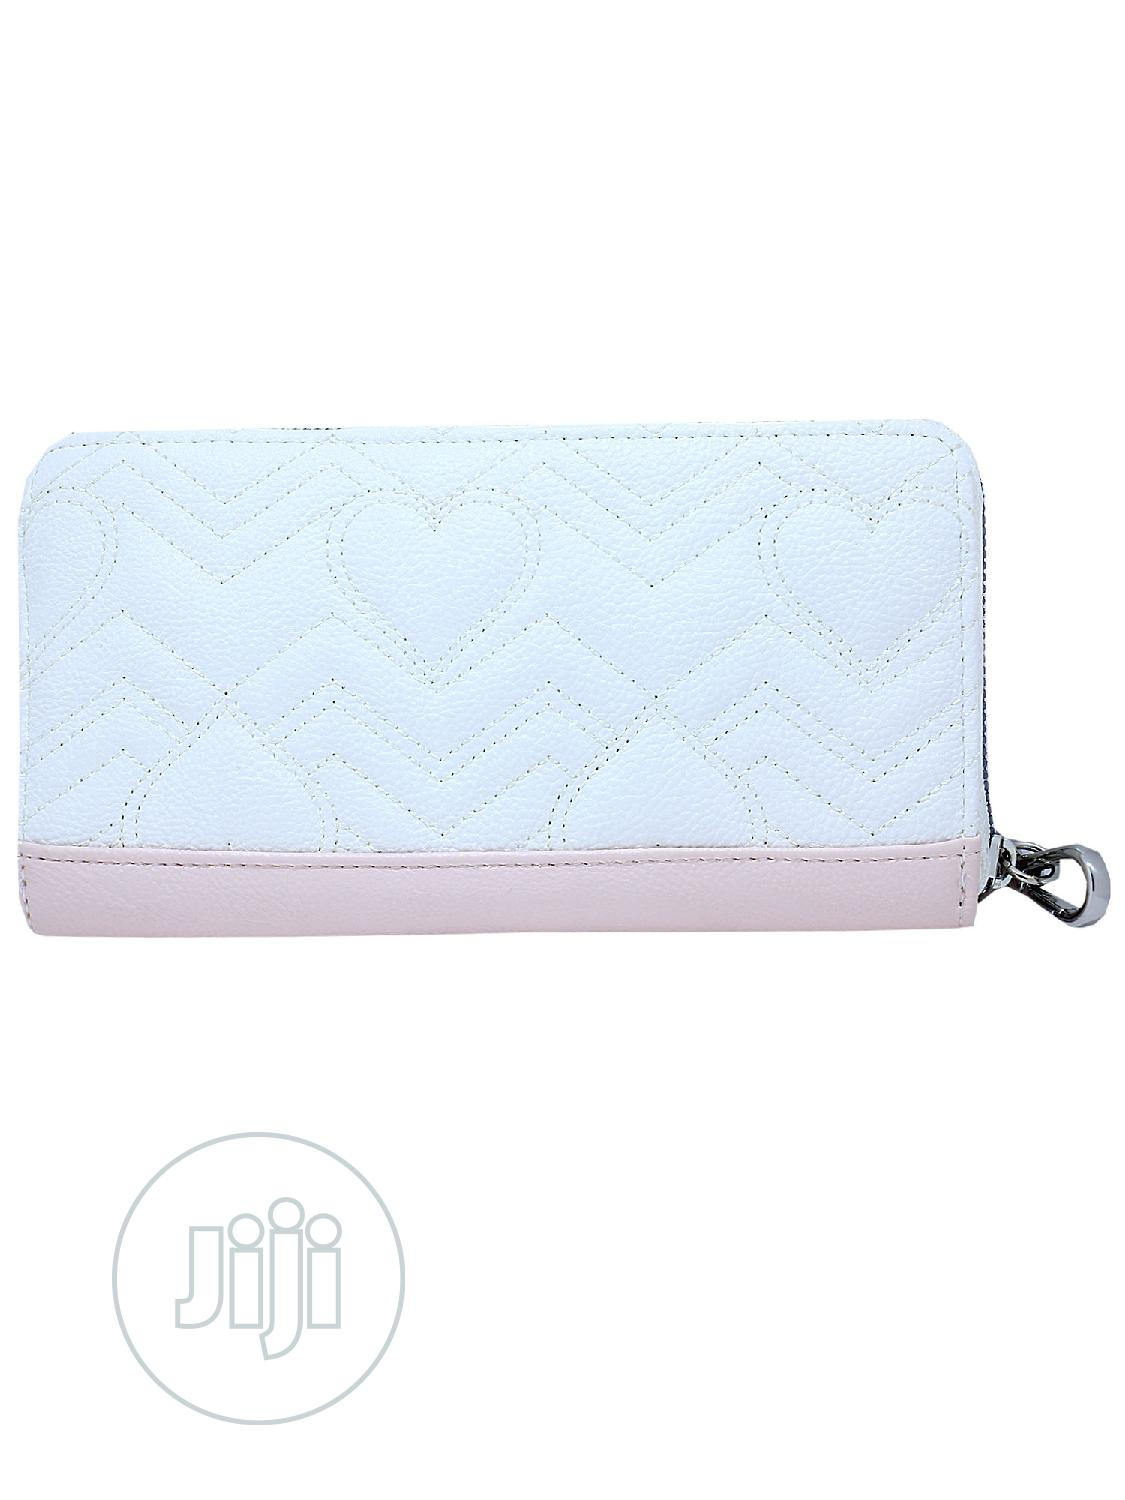 Female Purse(Betsey Johnson) | Bags for sale in Ikeja, Lagos State, Nigeria